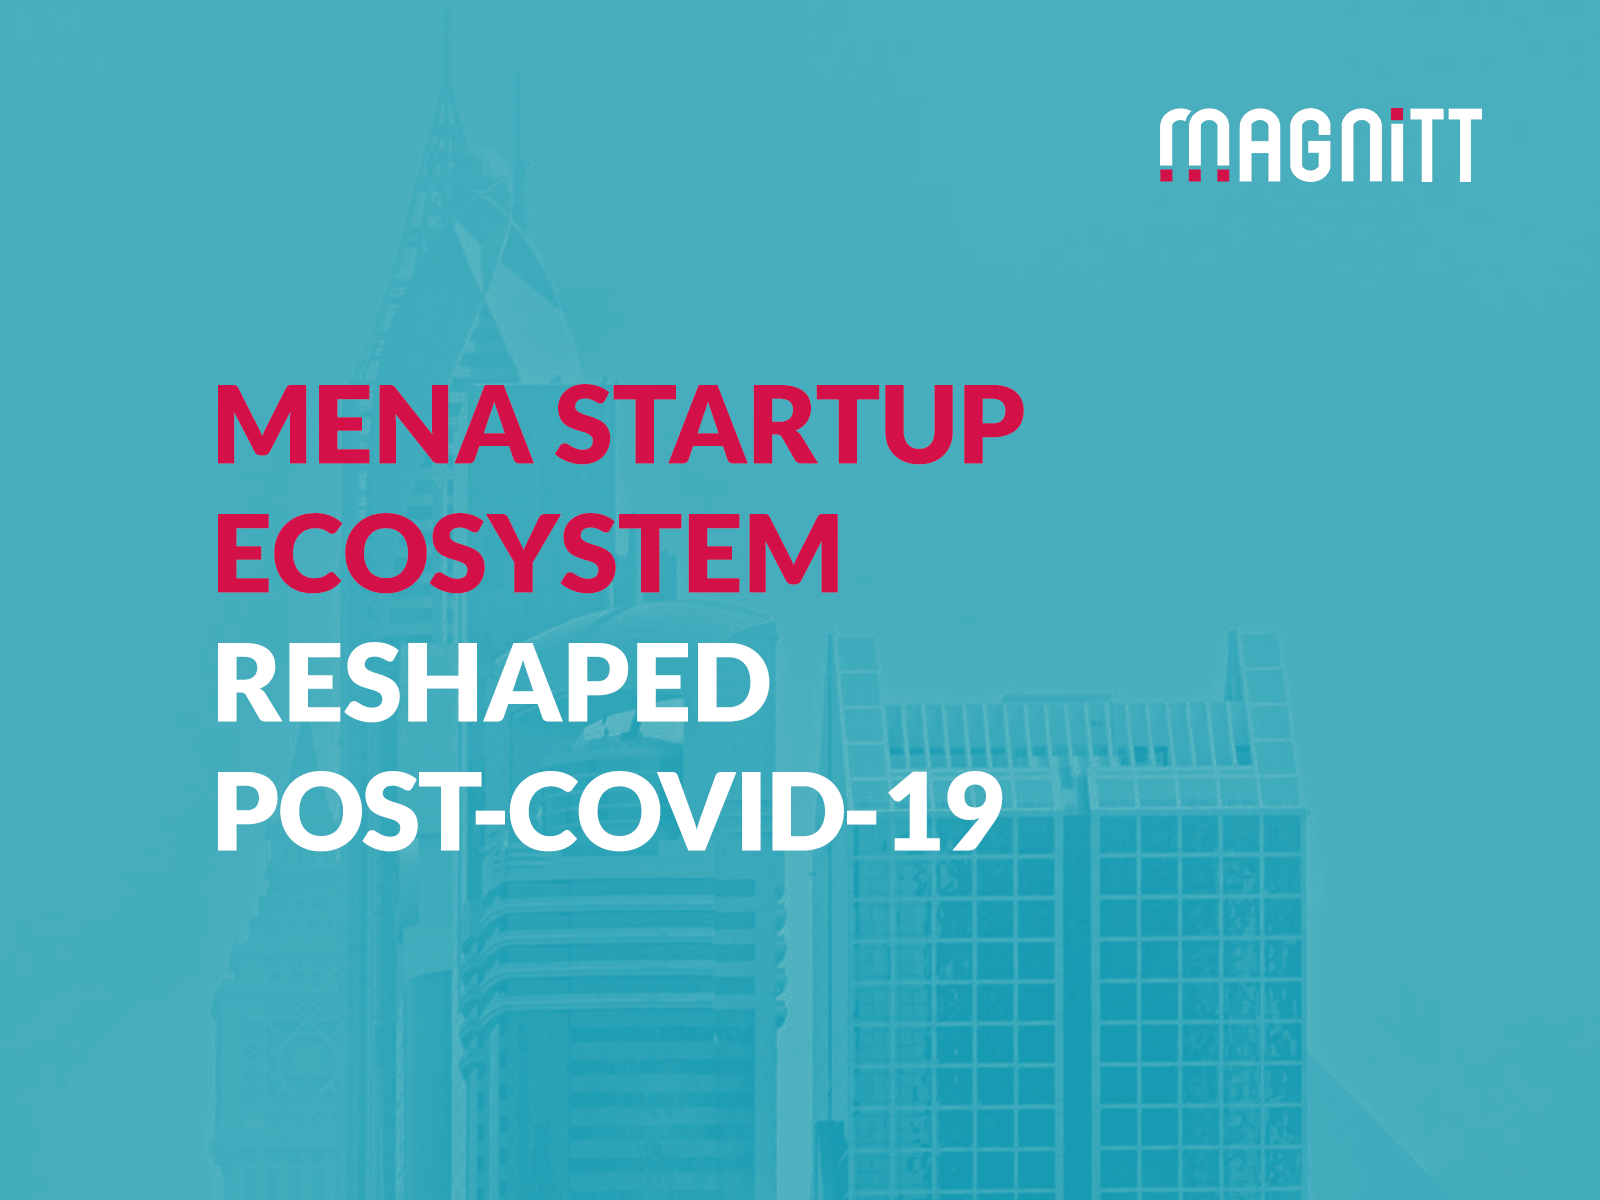 """MENA startup ecosystem reshaped: What's the """"new normal"""" post-COVID-19?"""